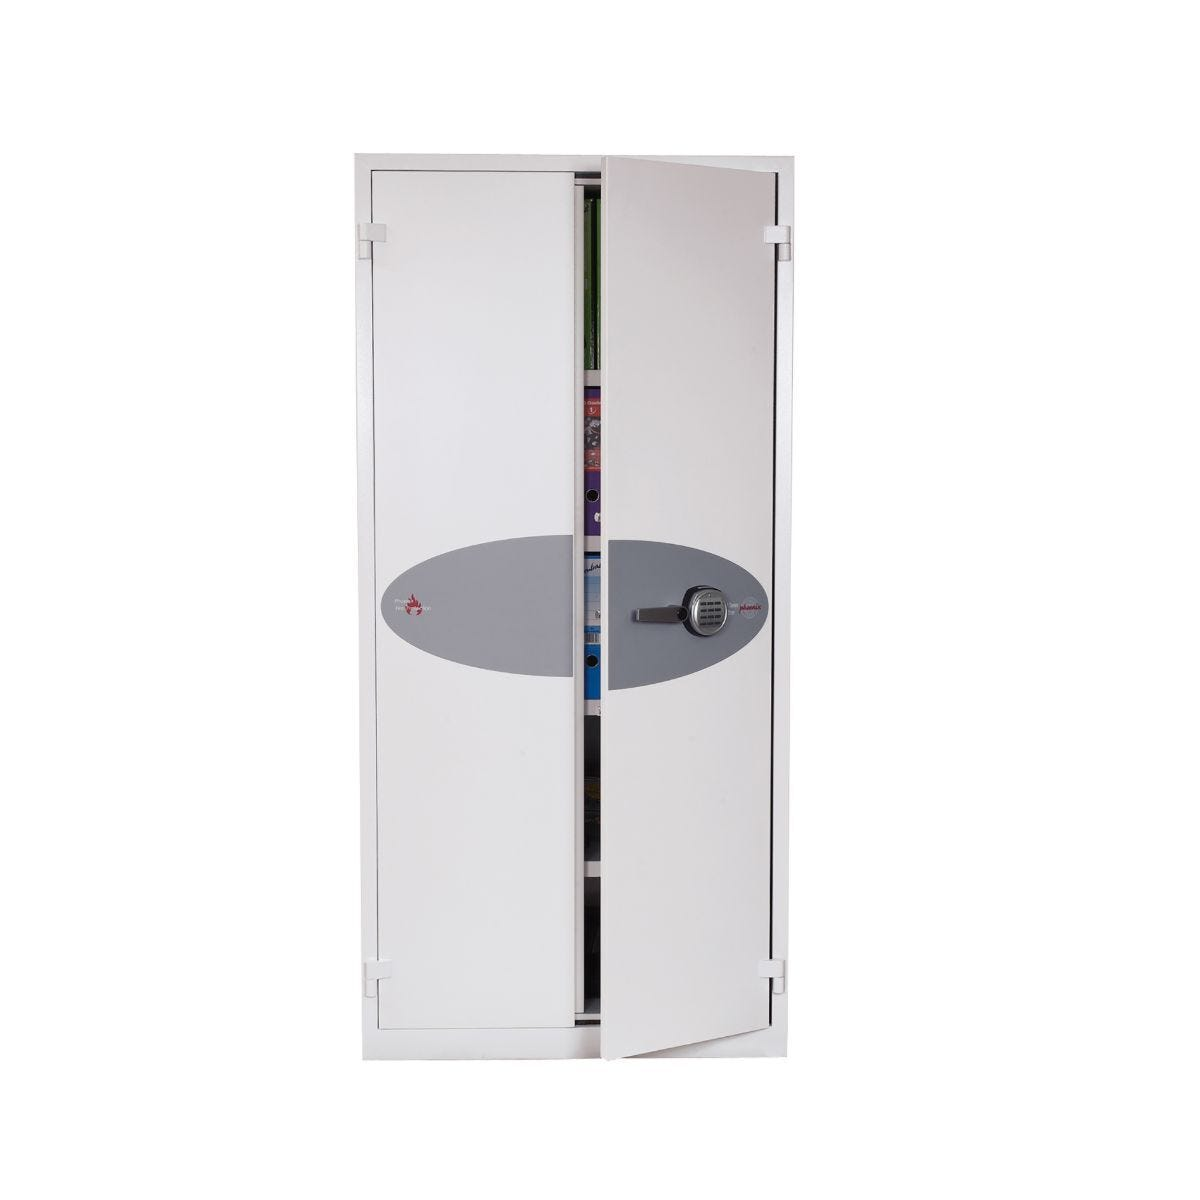 Phoenix Firechief FS1653E Fire and S1 Security Safe with Electronic Lock Size 3